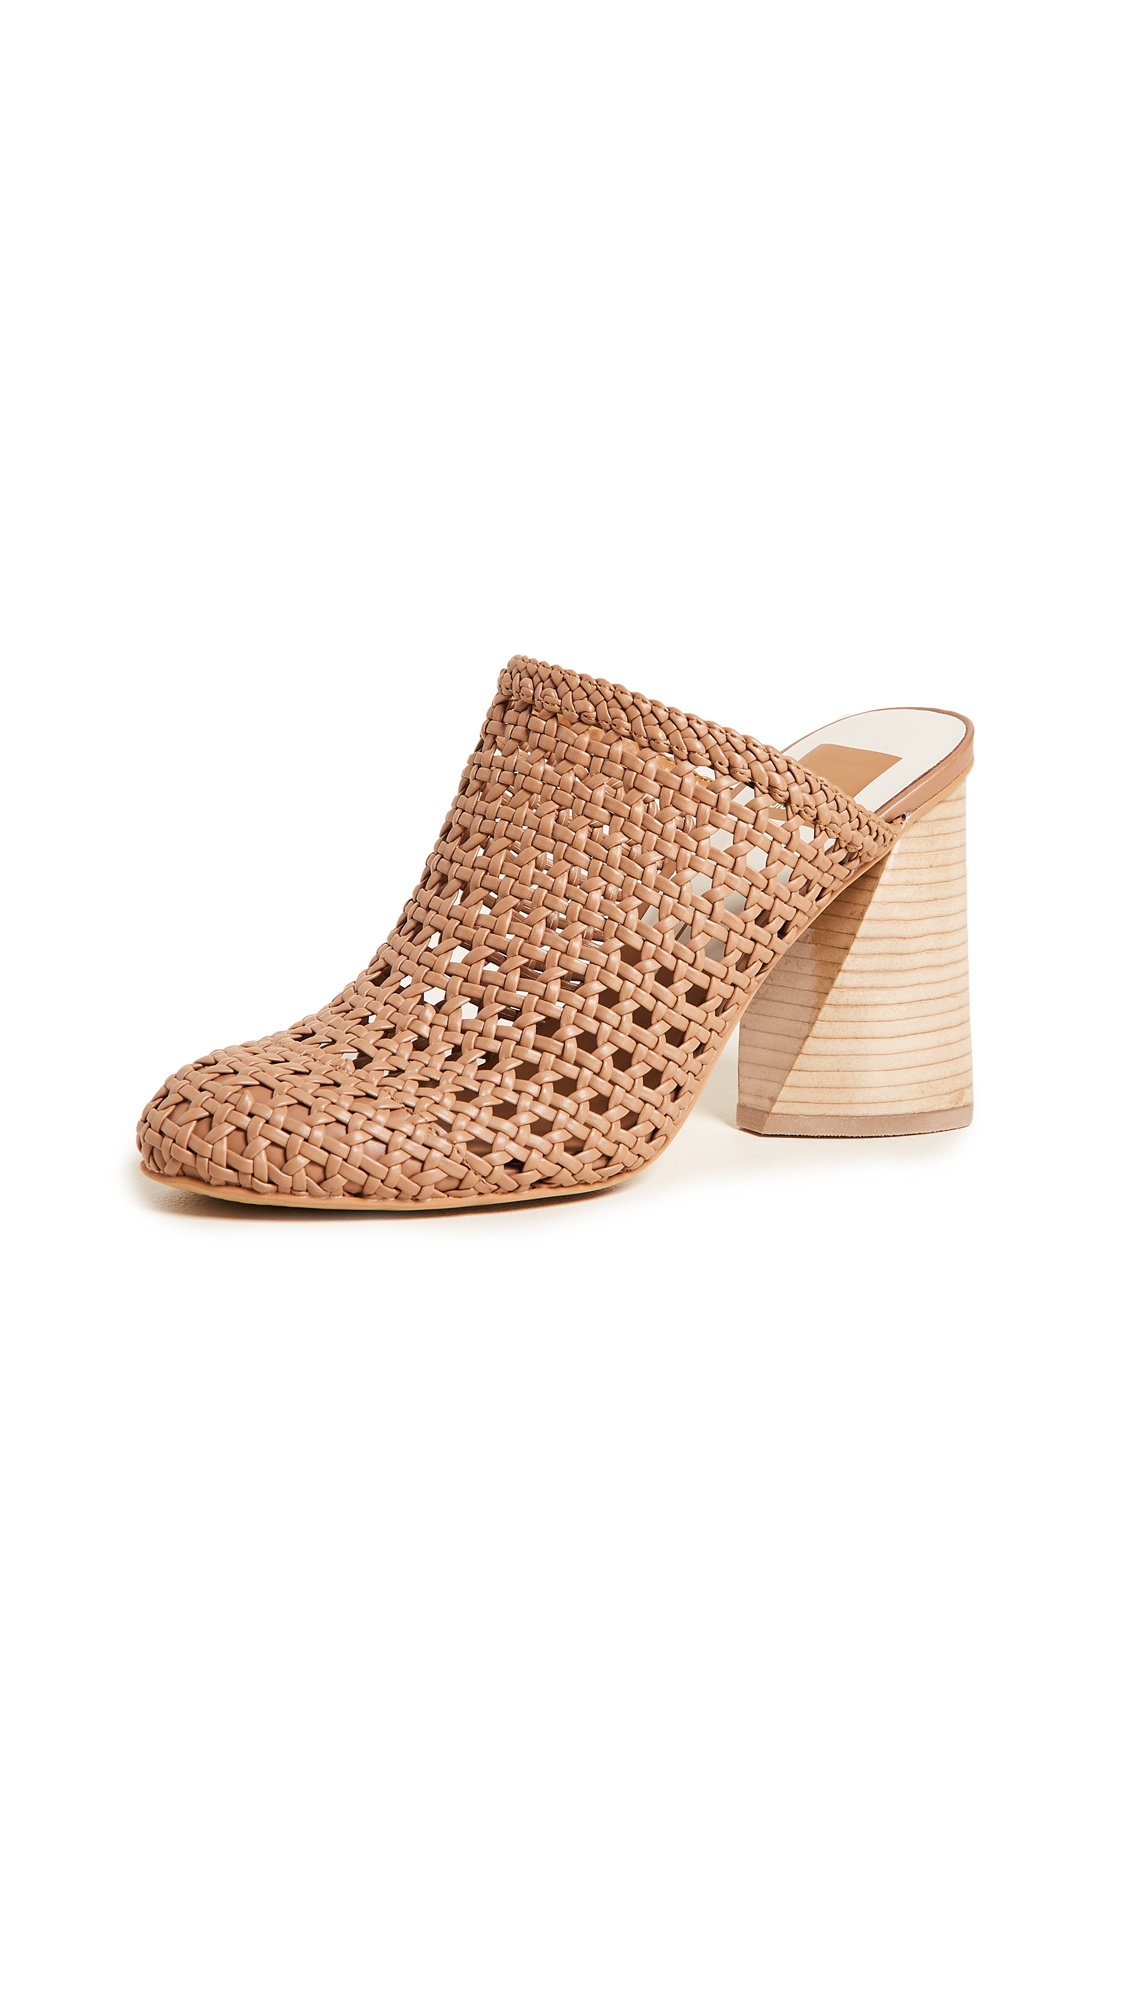 Dolce Vita Boston Woven Block Heel Pumps - Caramel